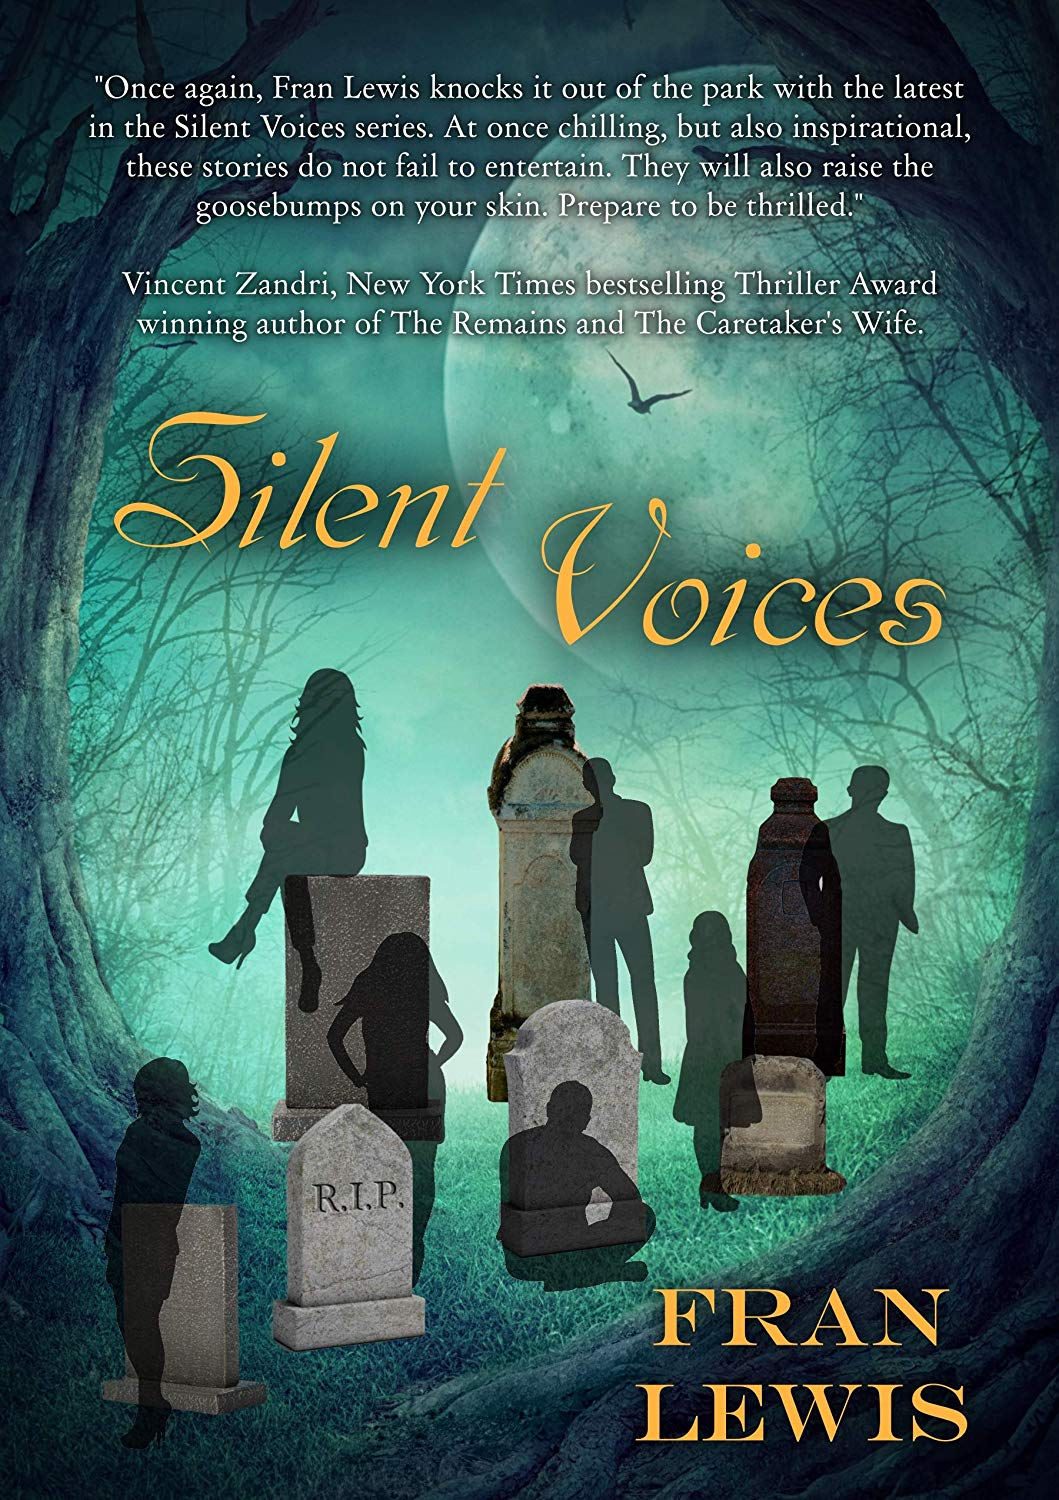 Silent Voices by Fran Lewis